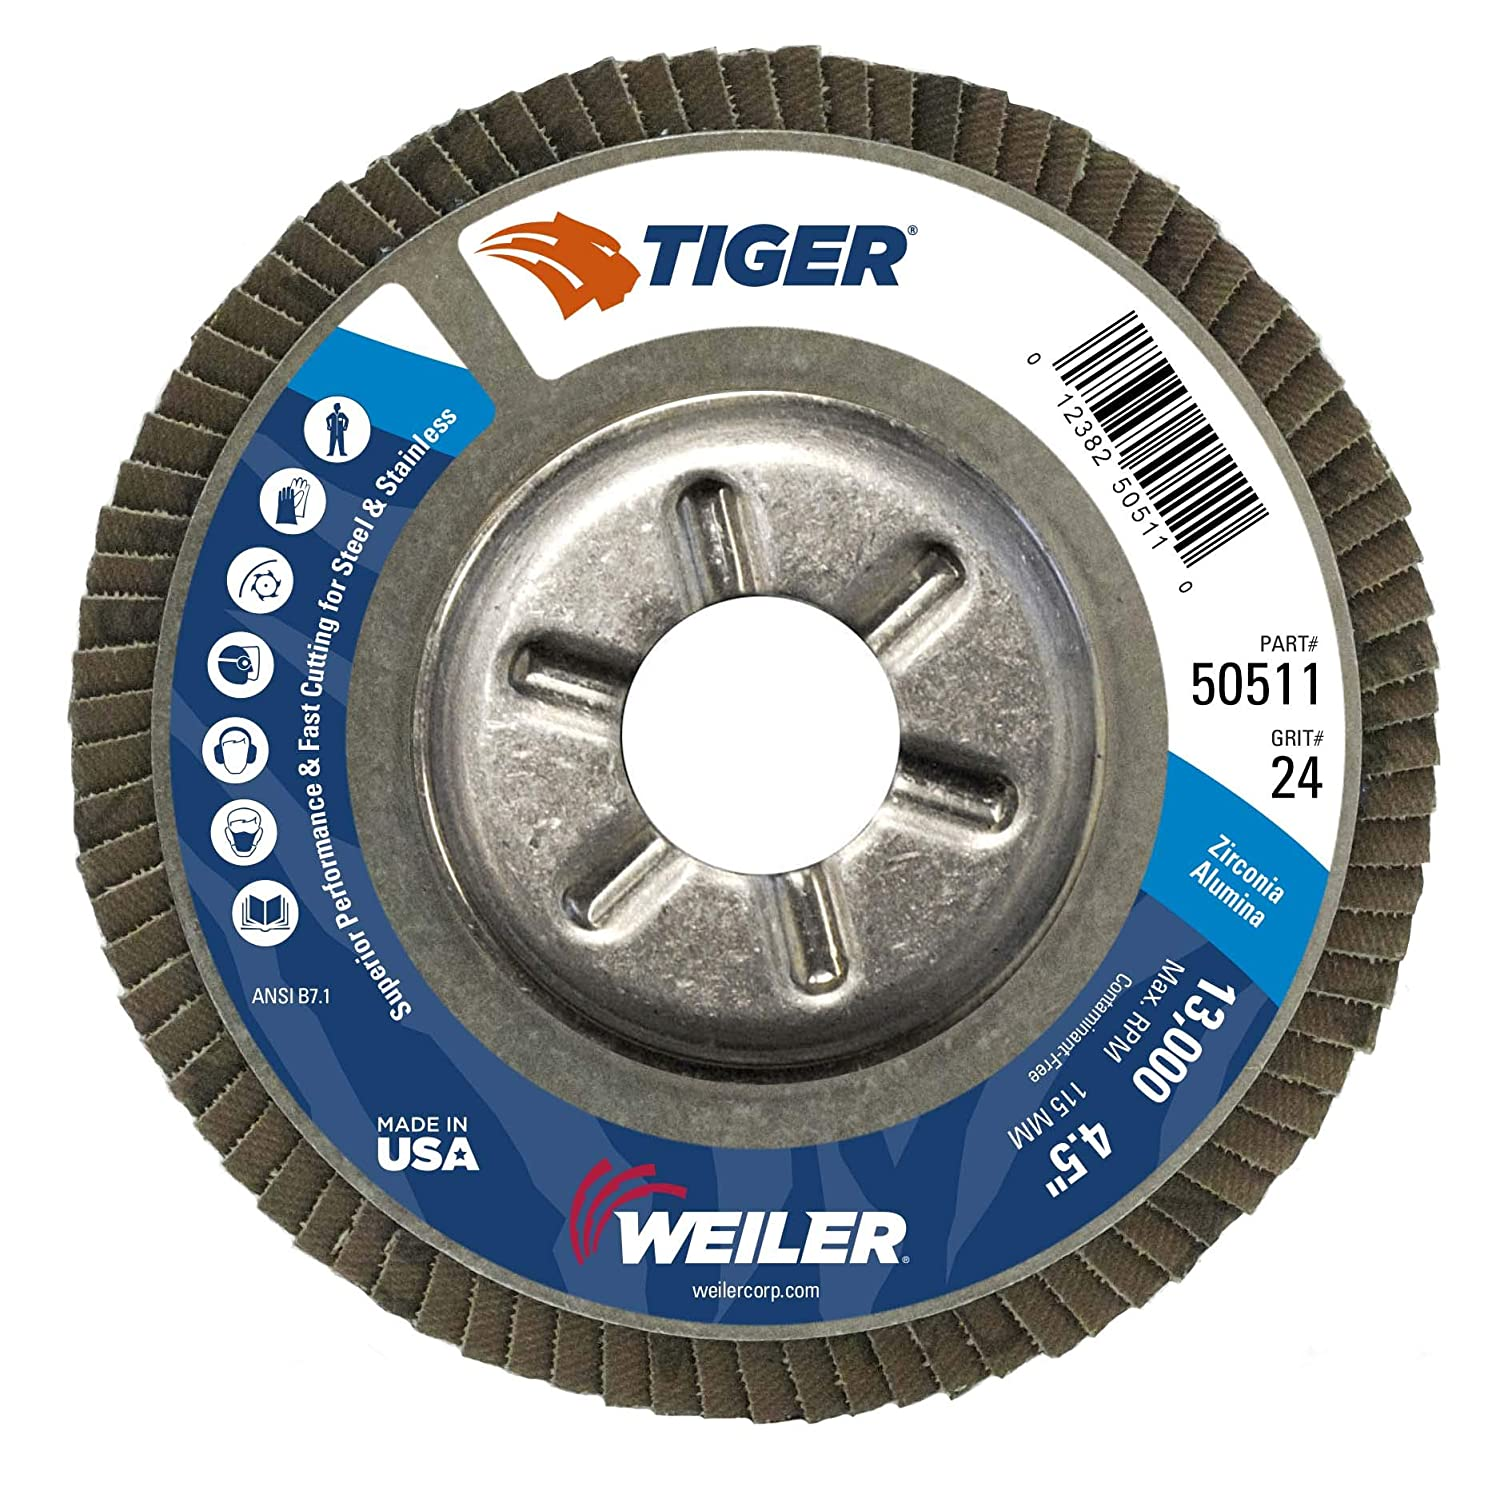 Zirconia Alumina Threaded Hole Pack of 1 Weiler Tiger Abrasive Flap Disc 60 Grit Aluminum Backing 7 Dia. Type 29